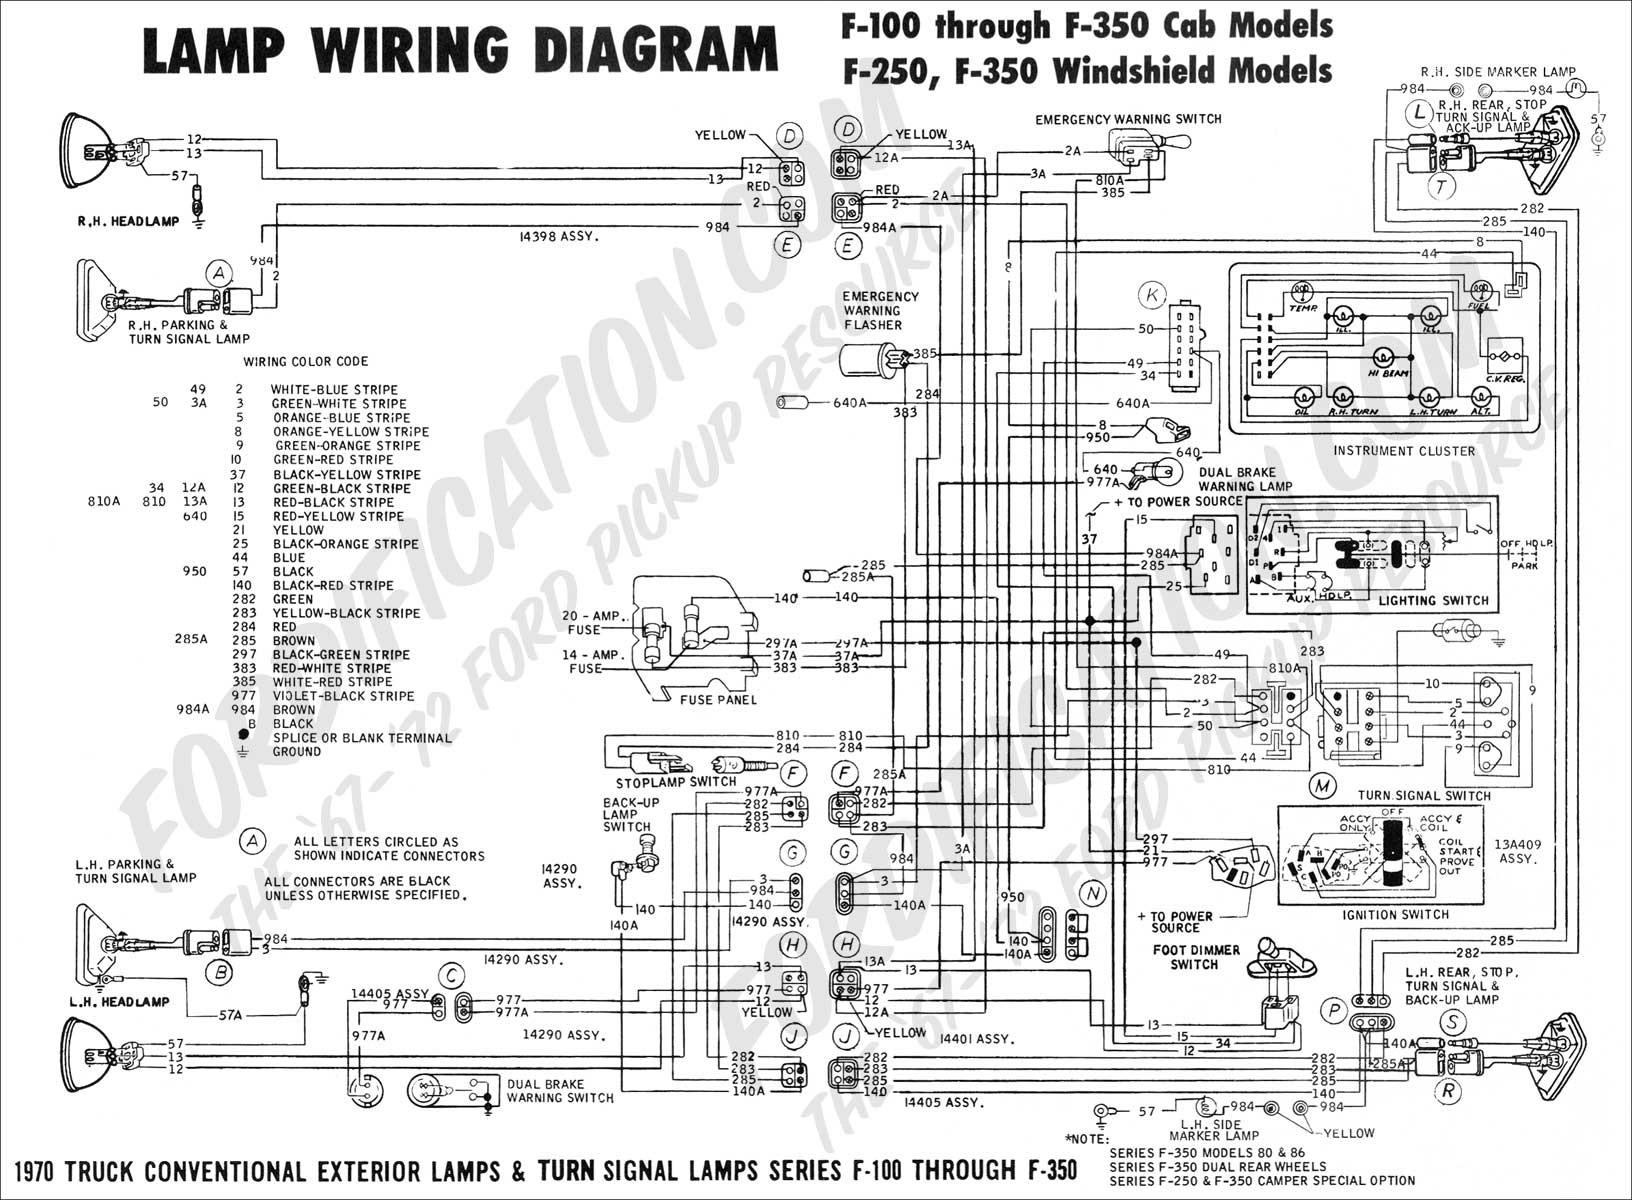 ford e350 wiring diagram wiring diagram libraries 1989 ford e350 wiring diagram wiring library1988 ford f350 wiring diagrams trusted wiring diagram u2022